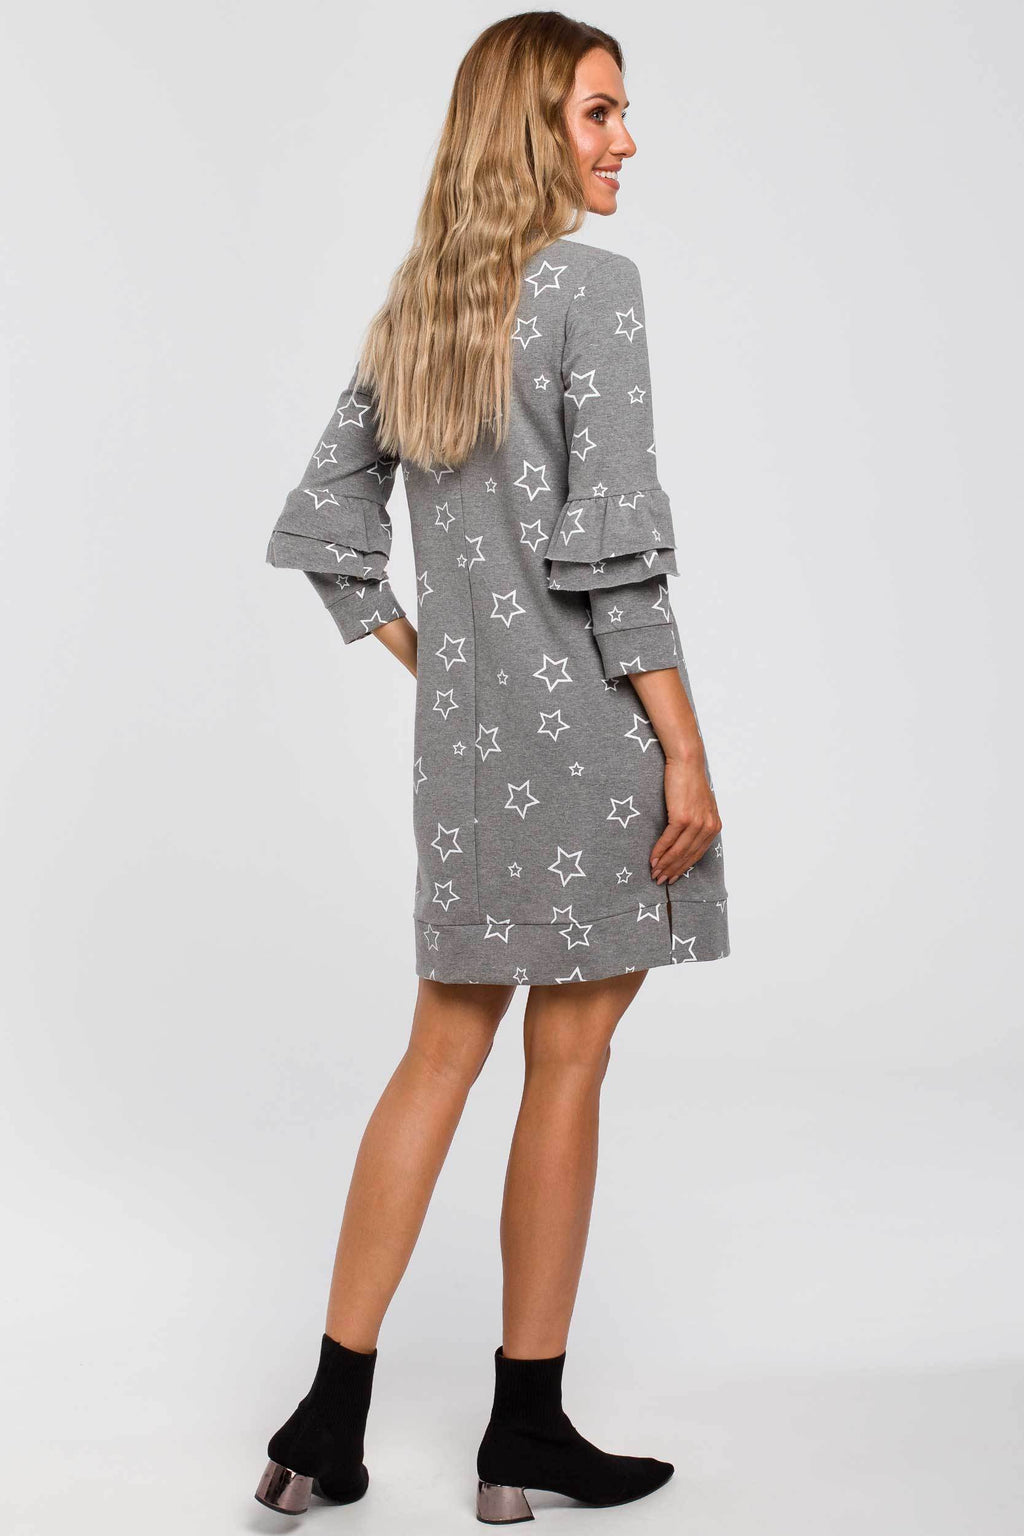 Star Print A Line Grey Dress With Ruffle Sleeves - So Chic Boutique